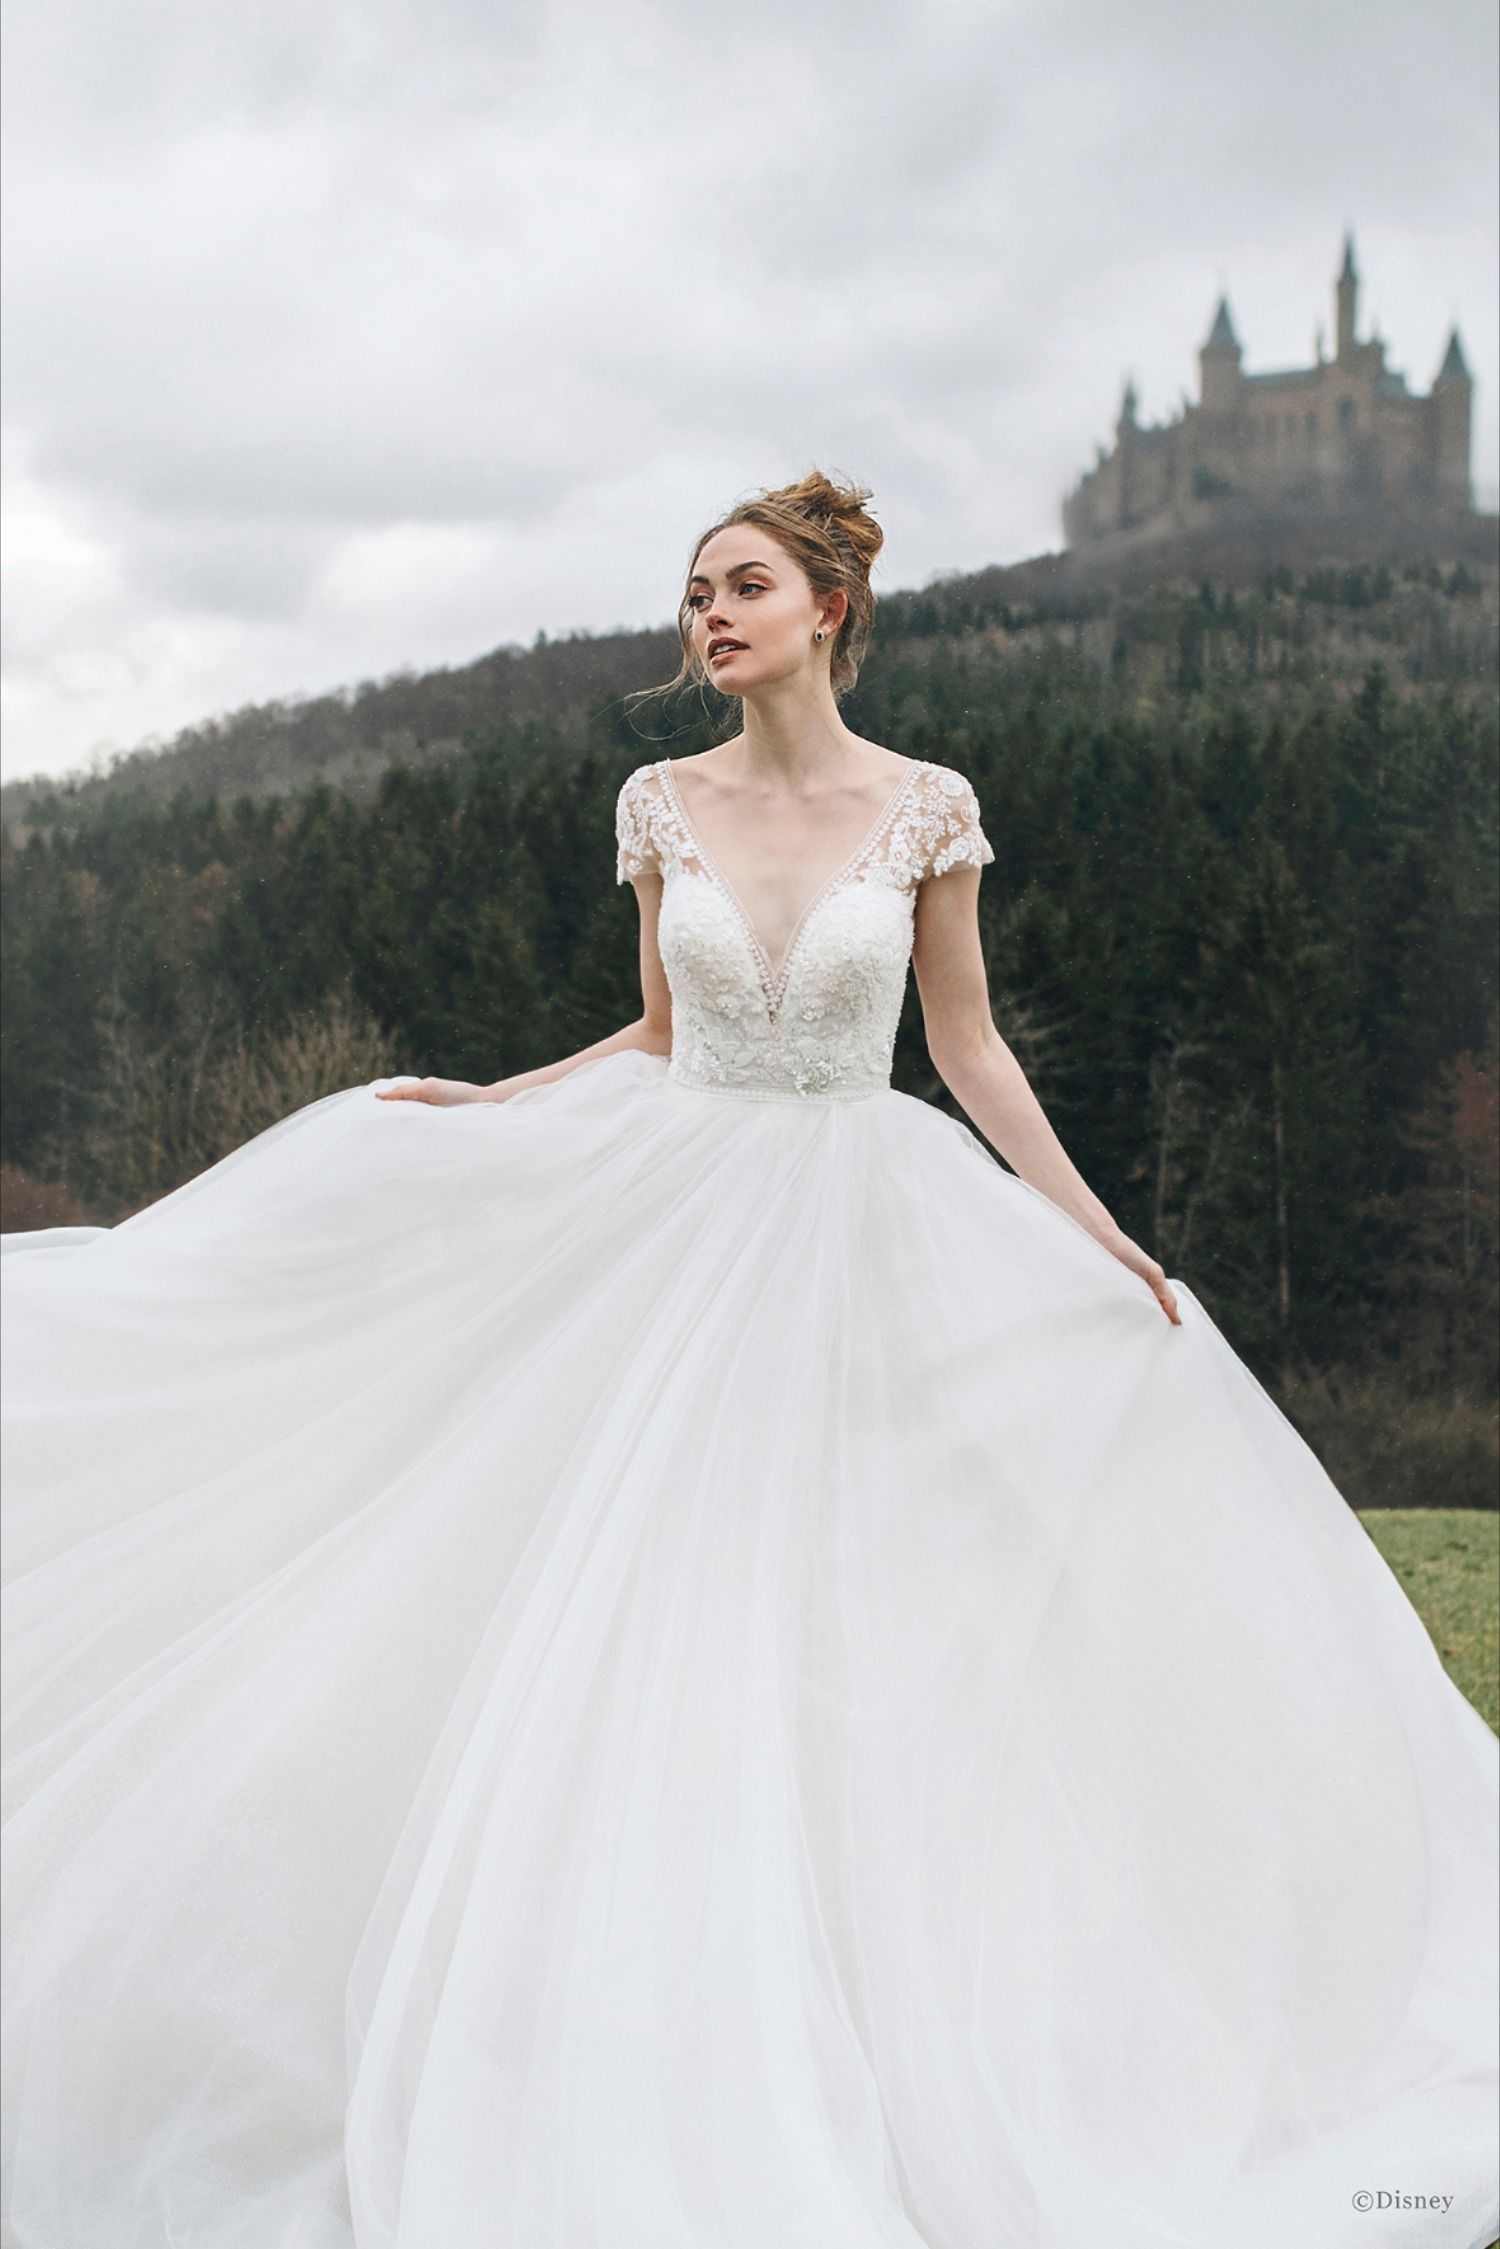 The Cinderella Wedding Gown The Bridal Collection in